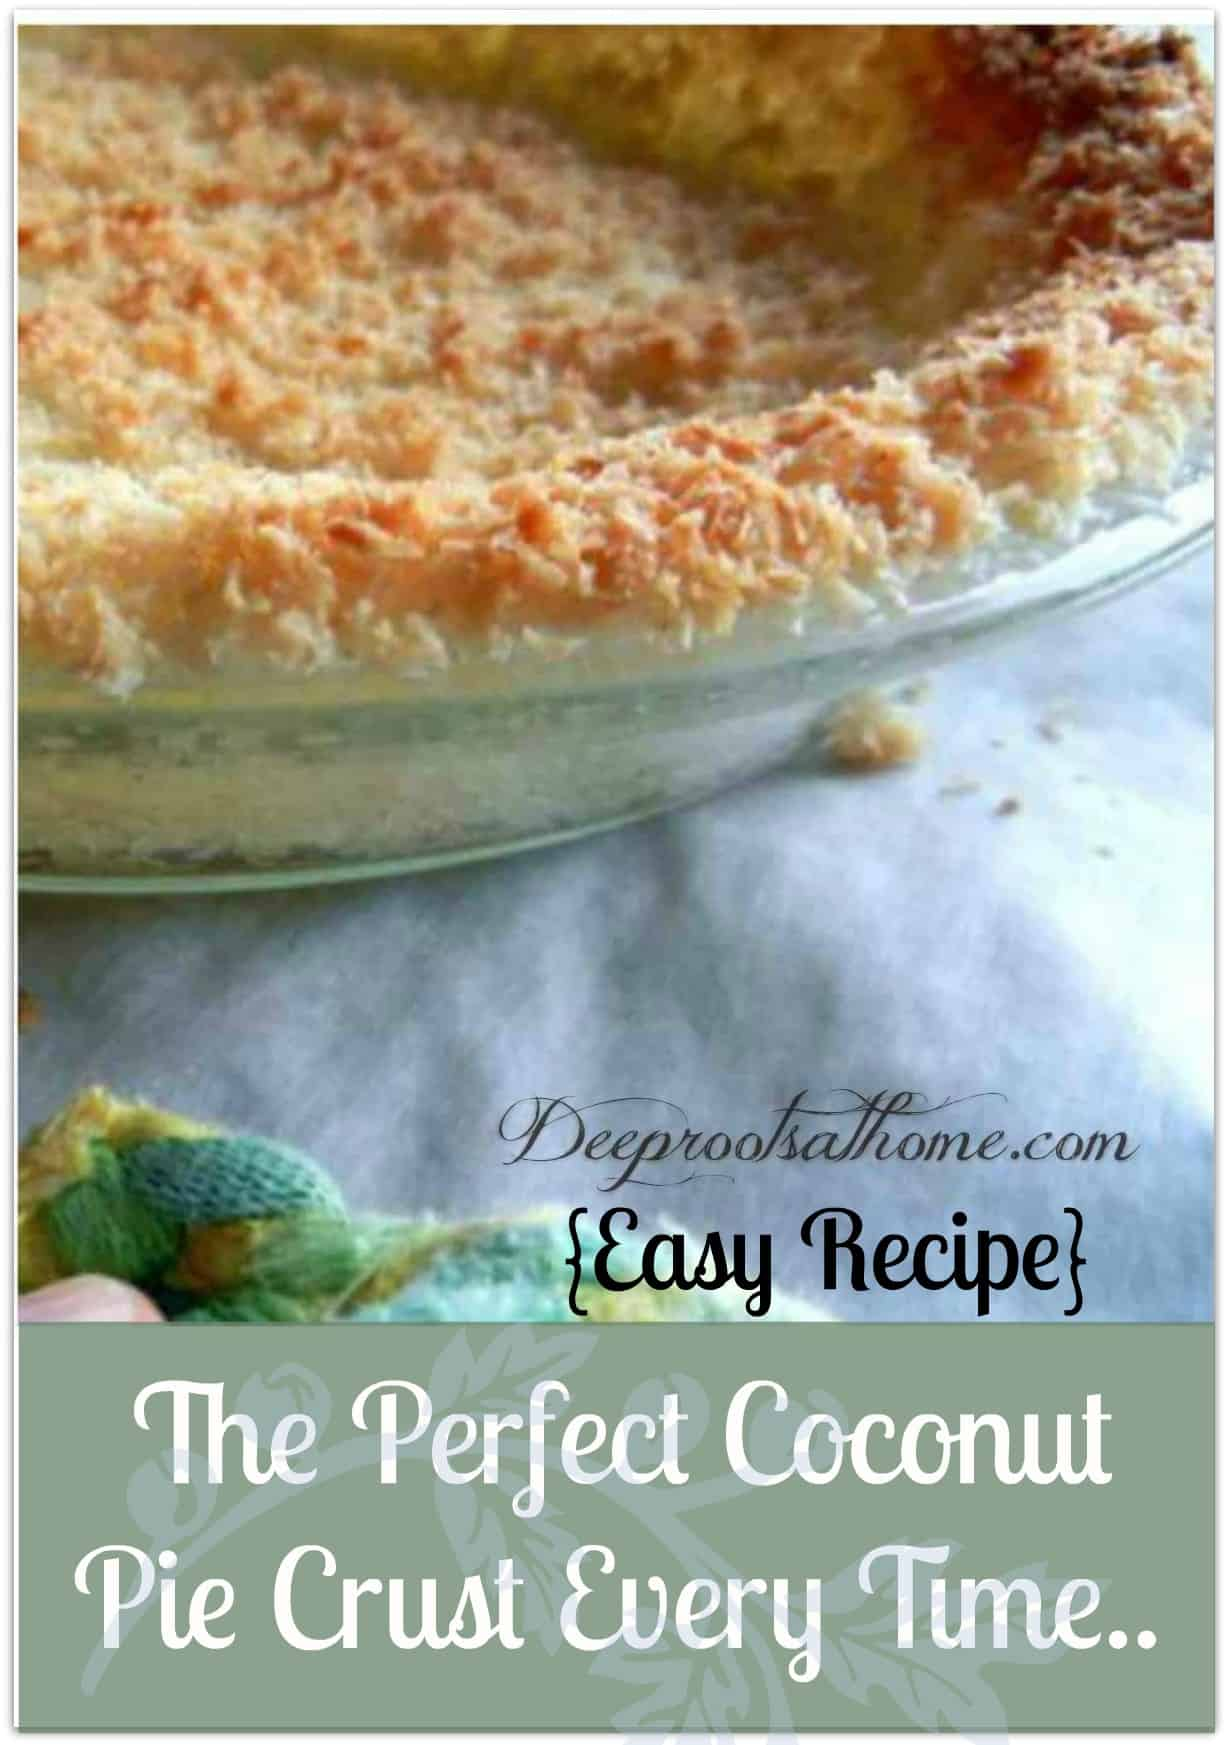 Perfect Coconut Pie Crust Every Time {Easy}, baking holiday coconut pie crusts